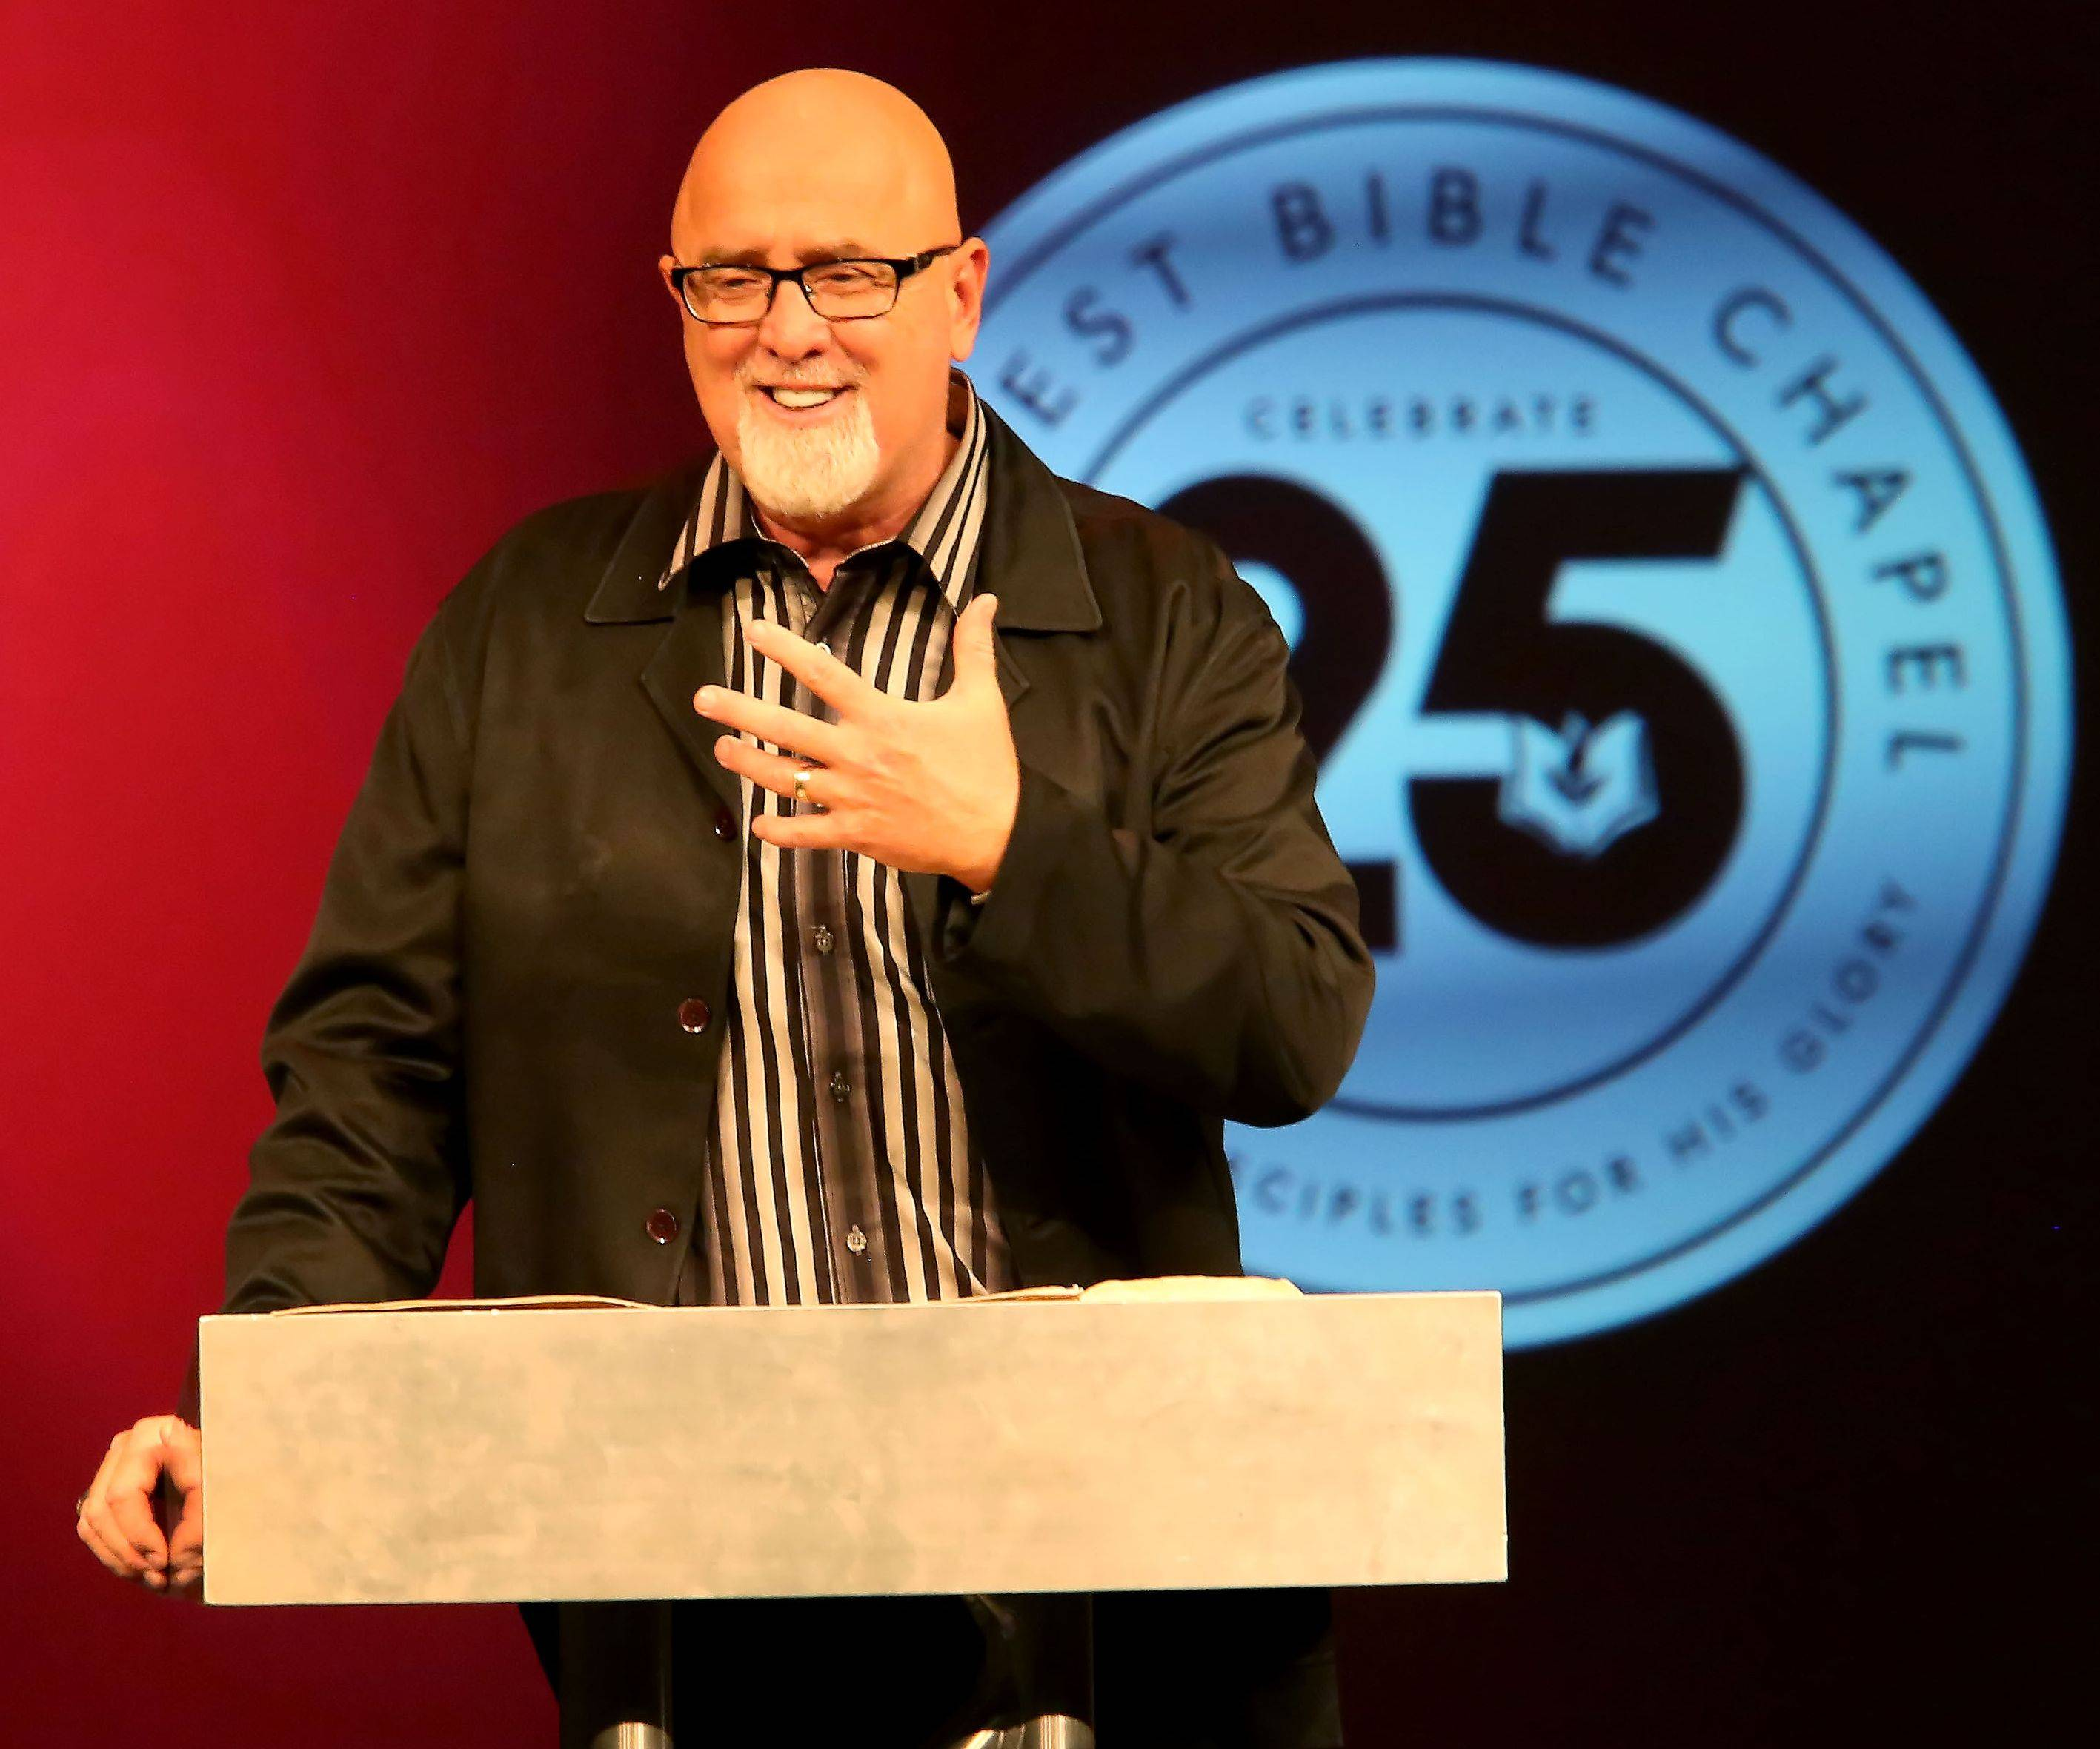 Pastor James MacDonald at the Elgin pulpit. MacDonald speaks from a different Harvest Bible house of worship each week, while his message is beamed to the other churches.